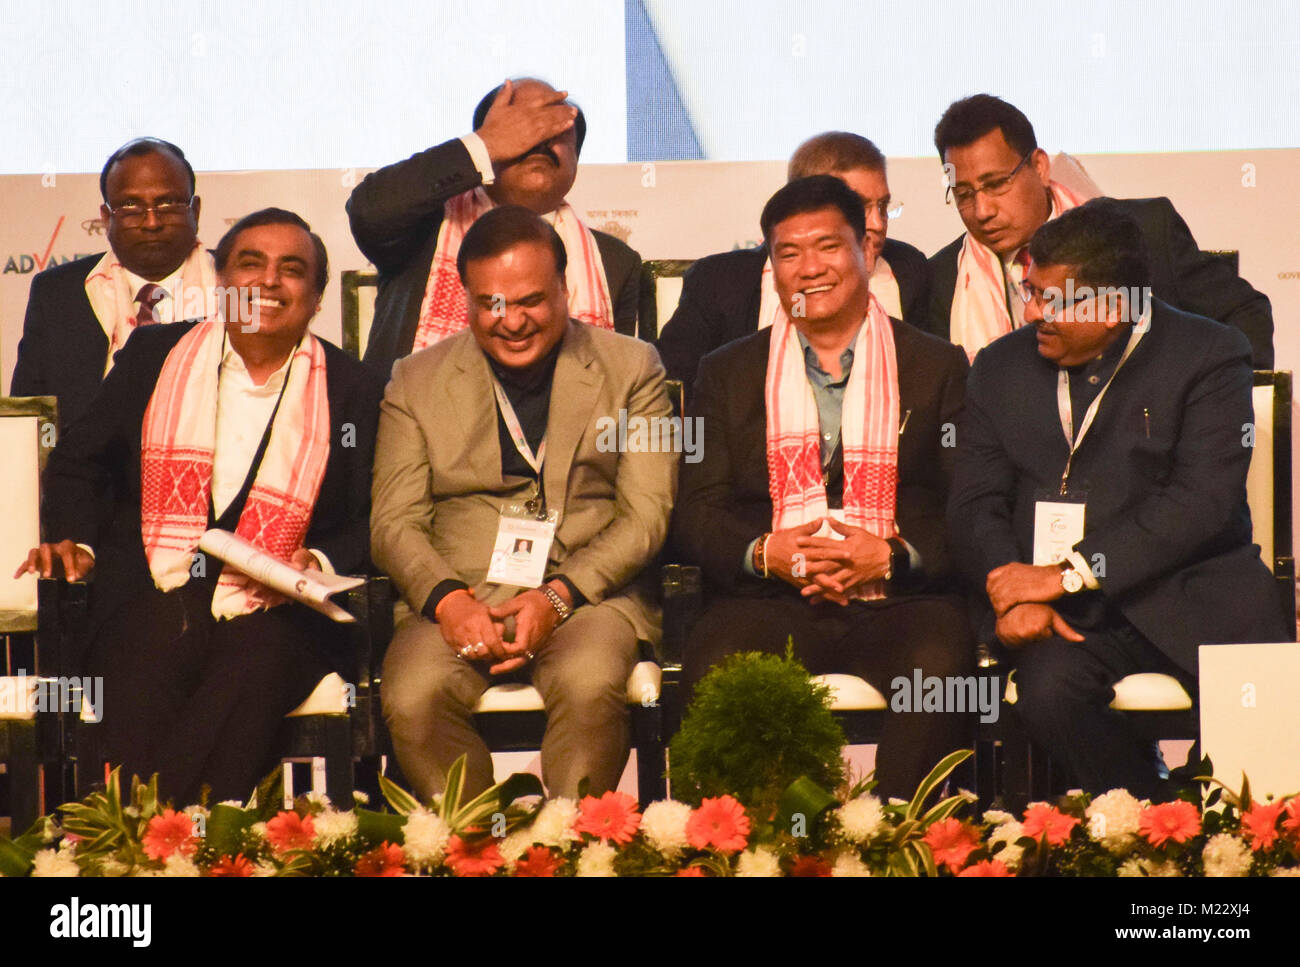 Guwahati, India. 03rd Feb, 2018. Industrialist Mukesh Ambani along with minister and delegates in the inauguration - Stock Image